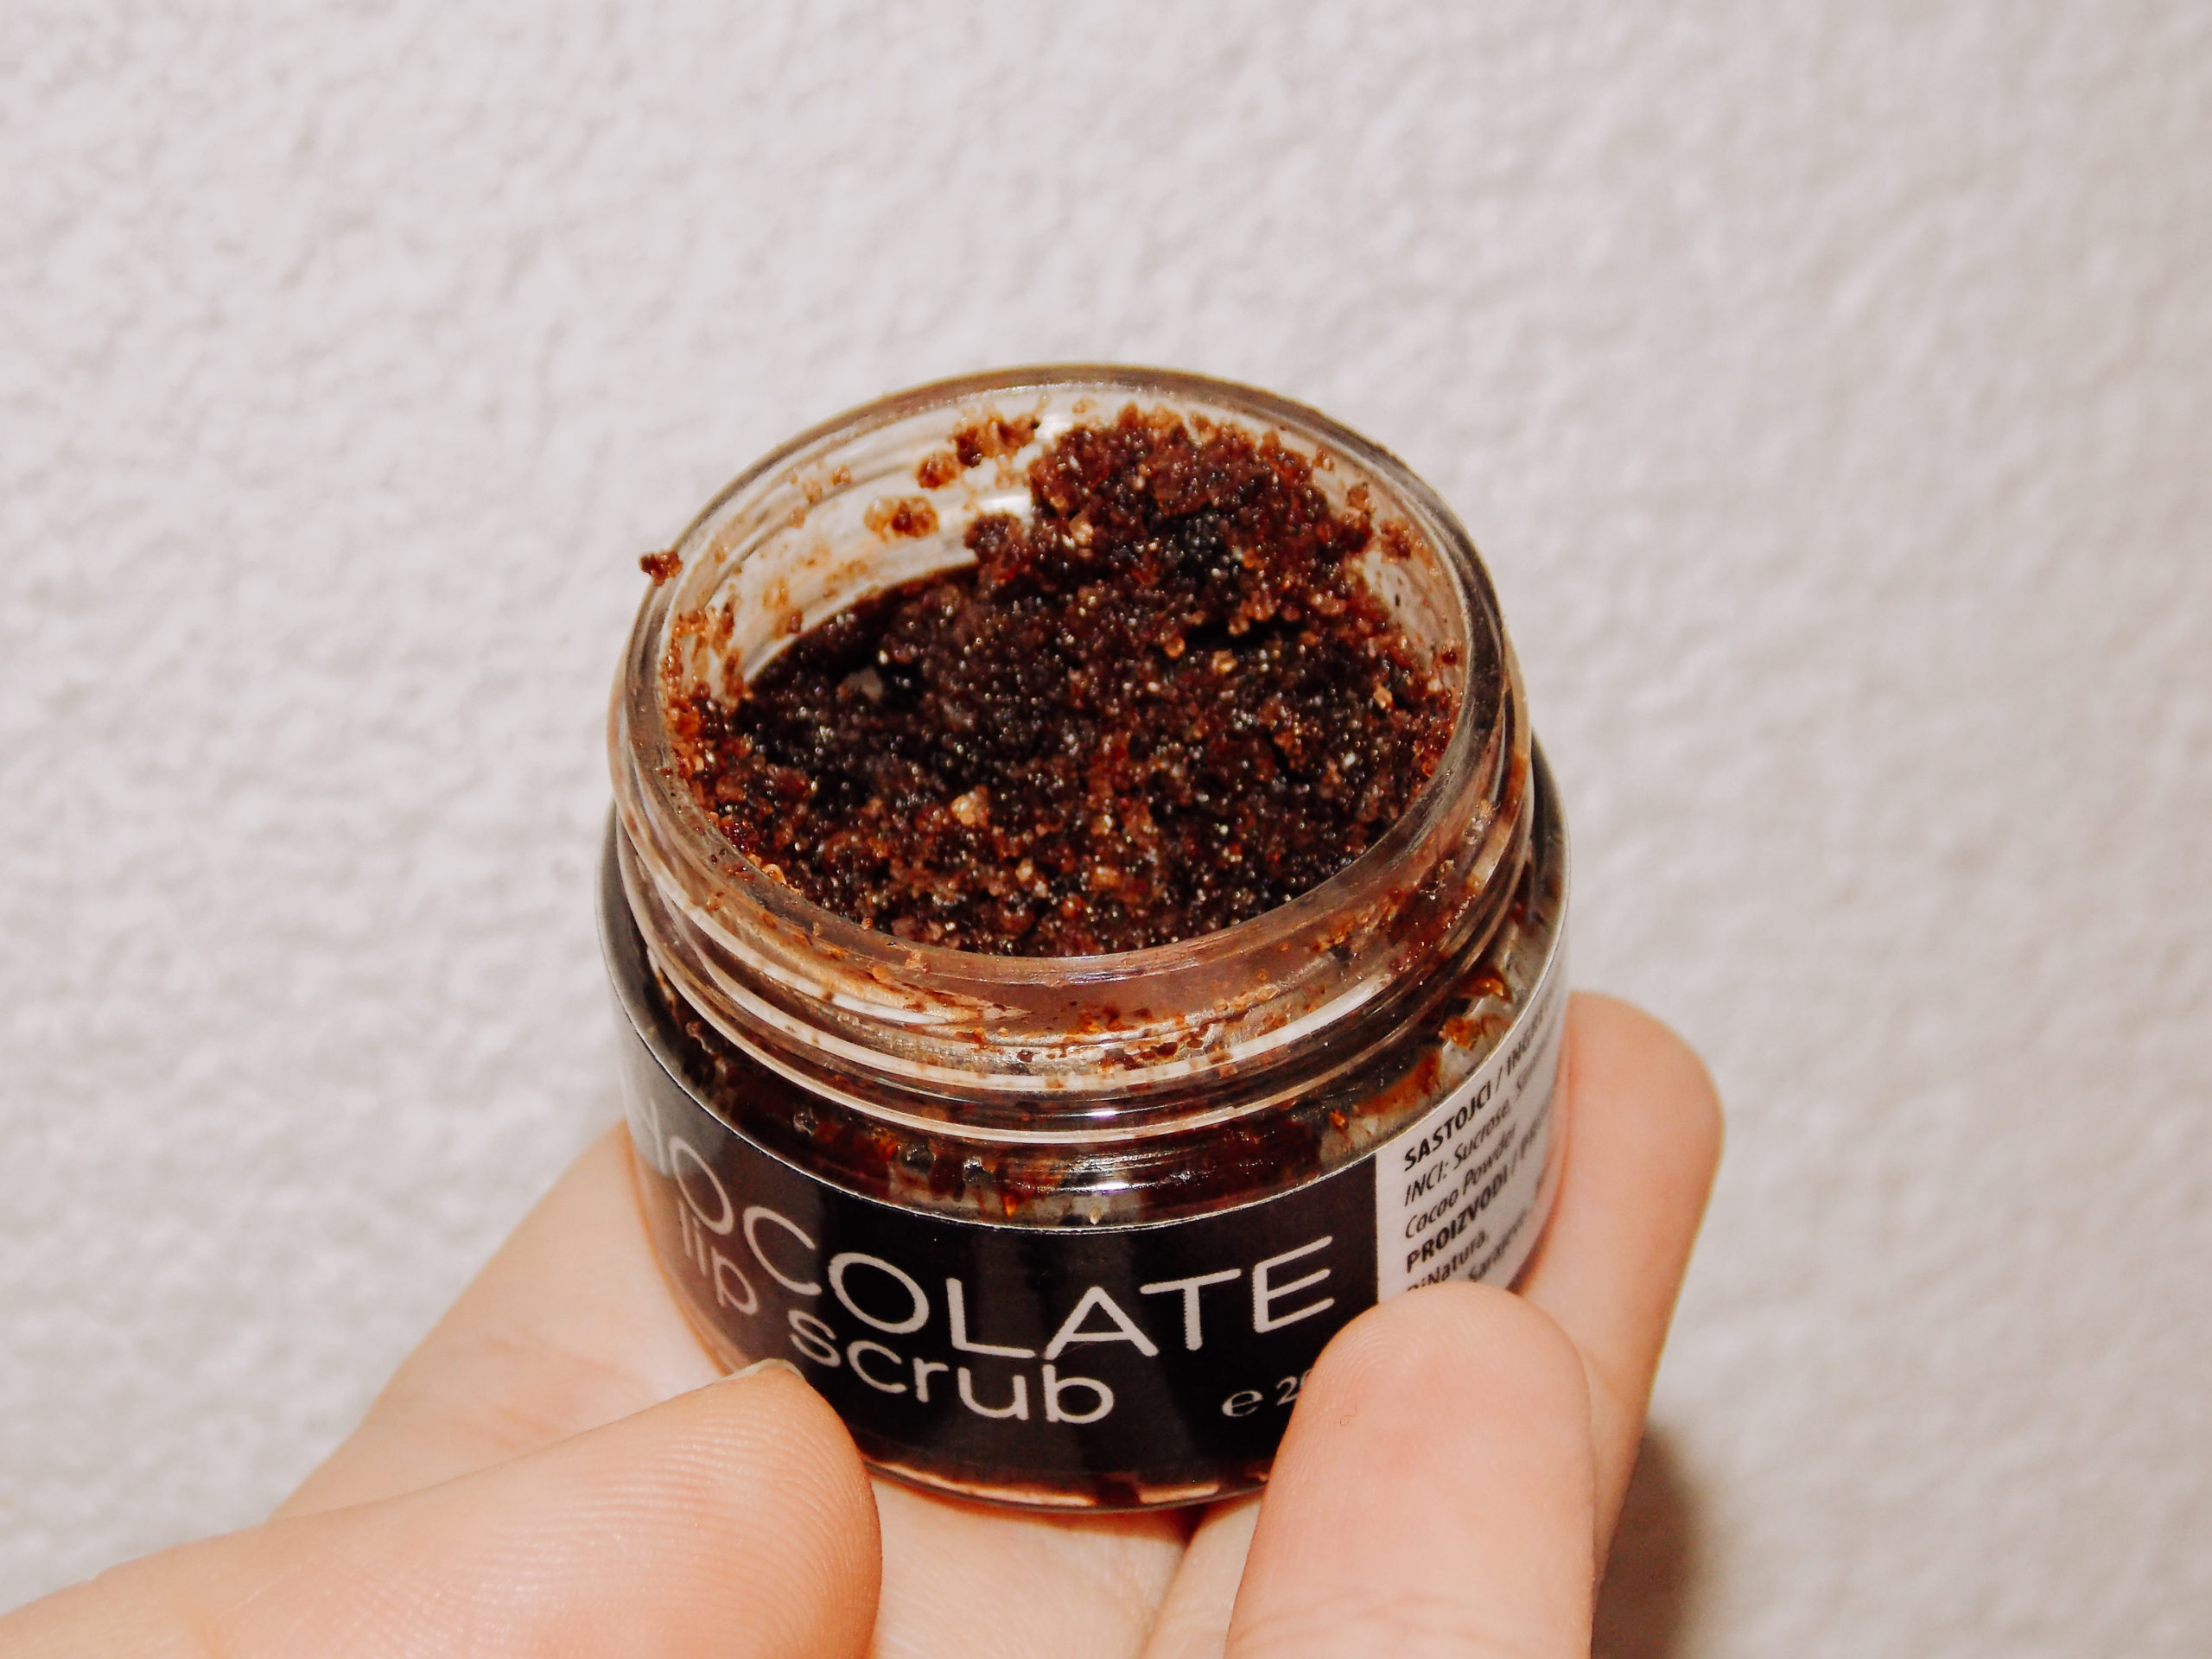 DiNatura Chocolate Lip Scrub Recenzija / Review